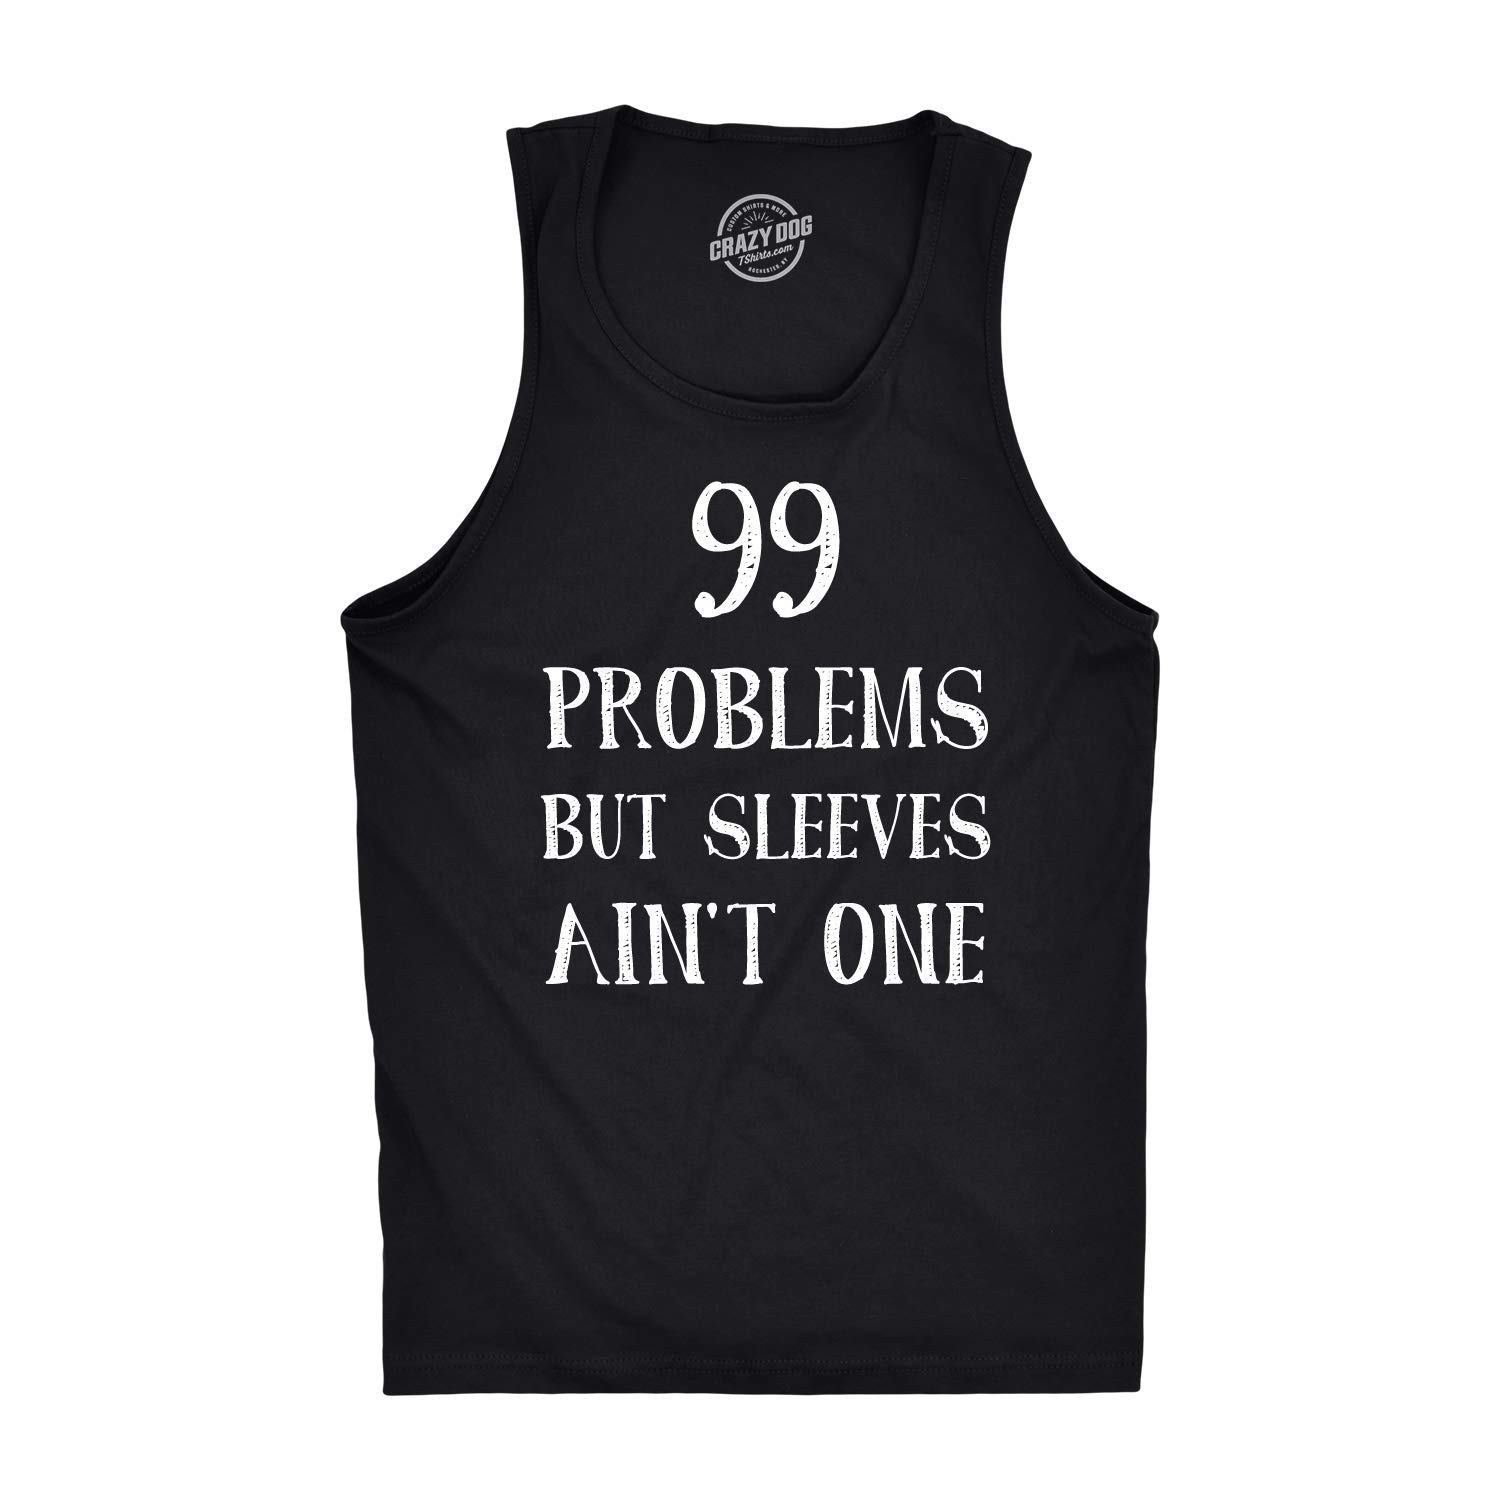 99 Problems But Sleeves Ain't One Tank Top Rap Music Funny Muscles Sleveless Tee Crazy Dog Tshirts